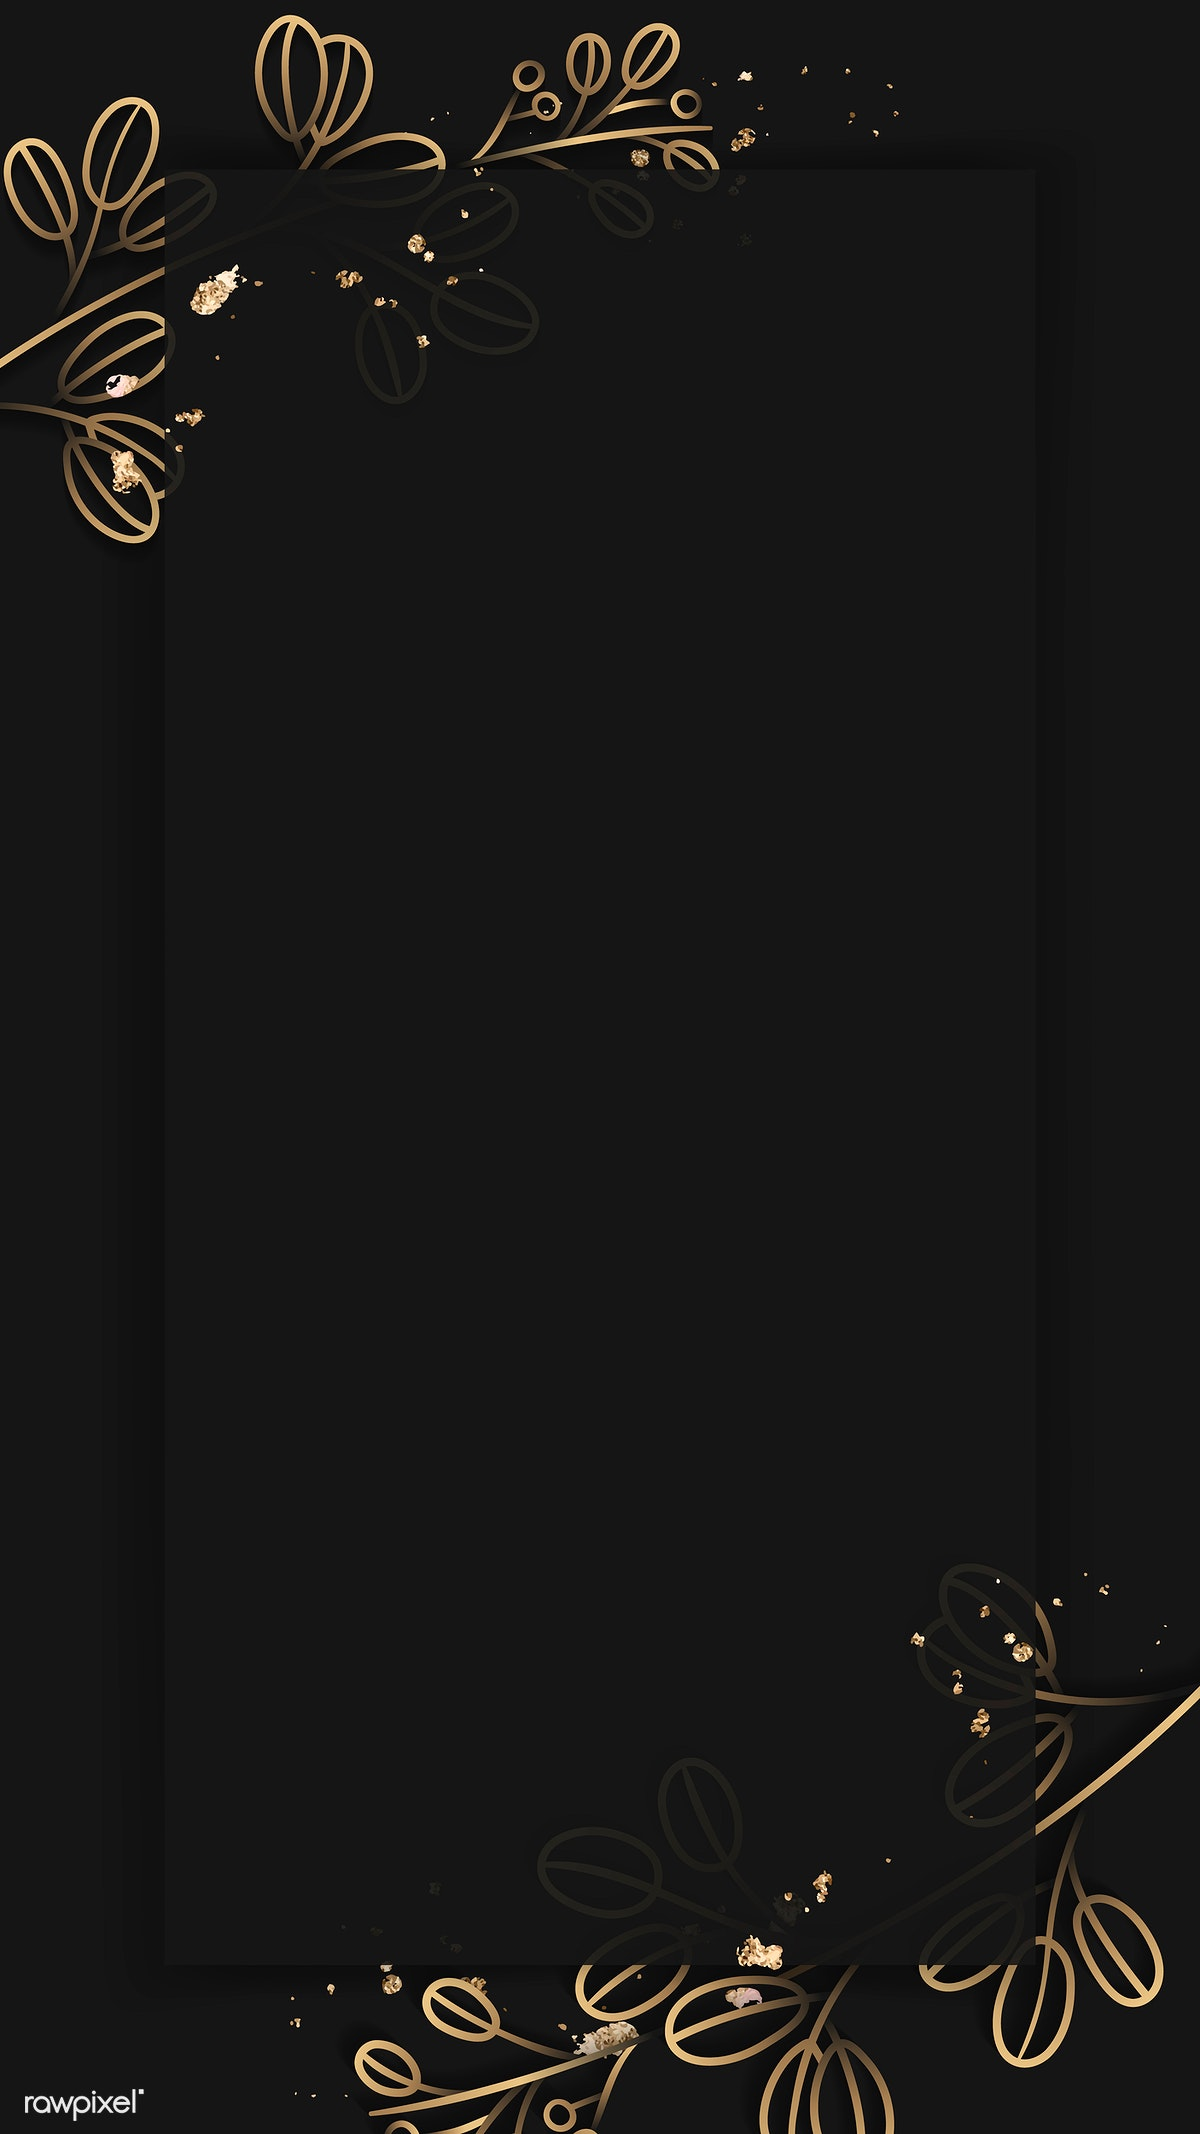 Unduh 52 Background Black With Gold HD Terbaik